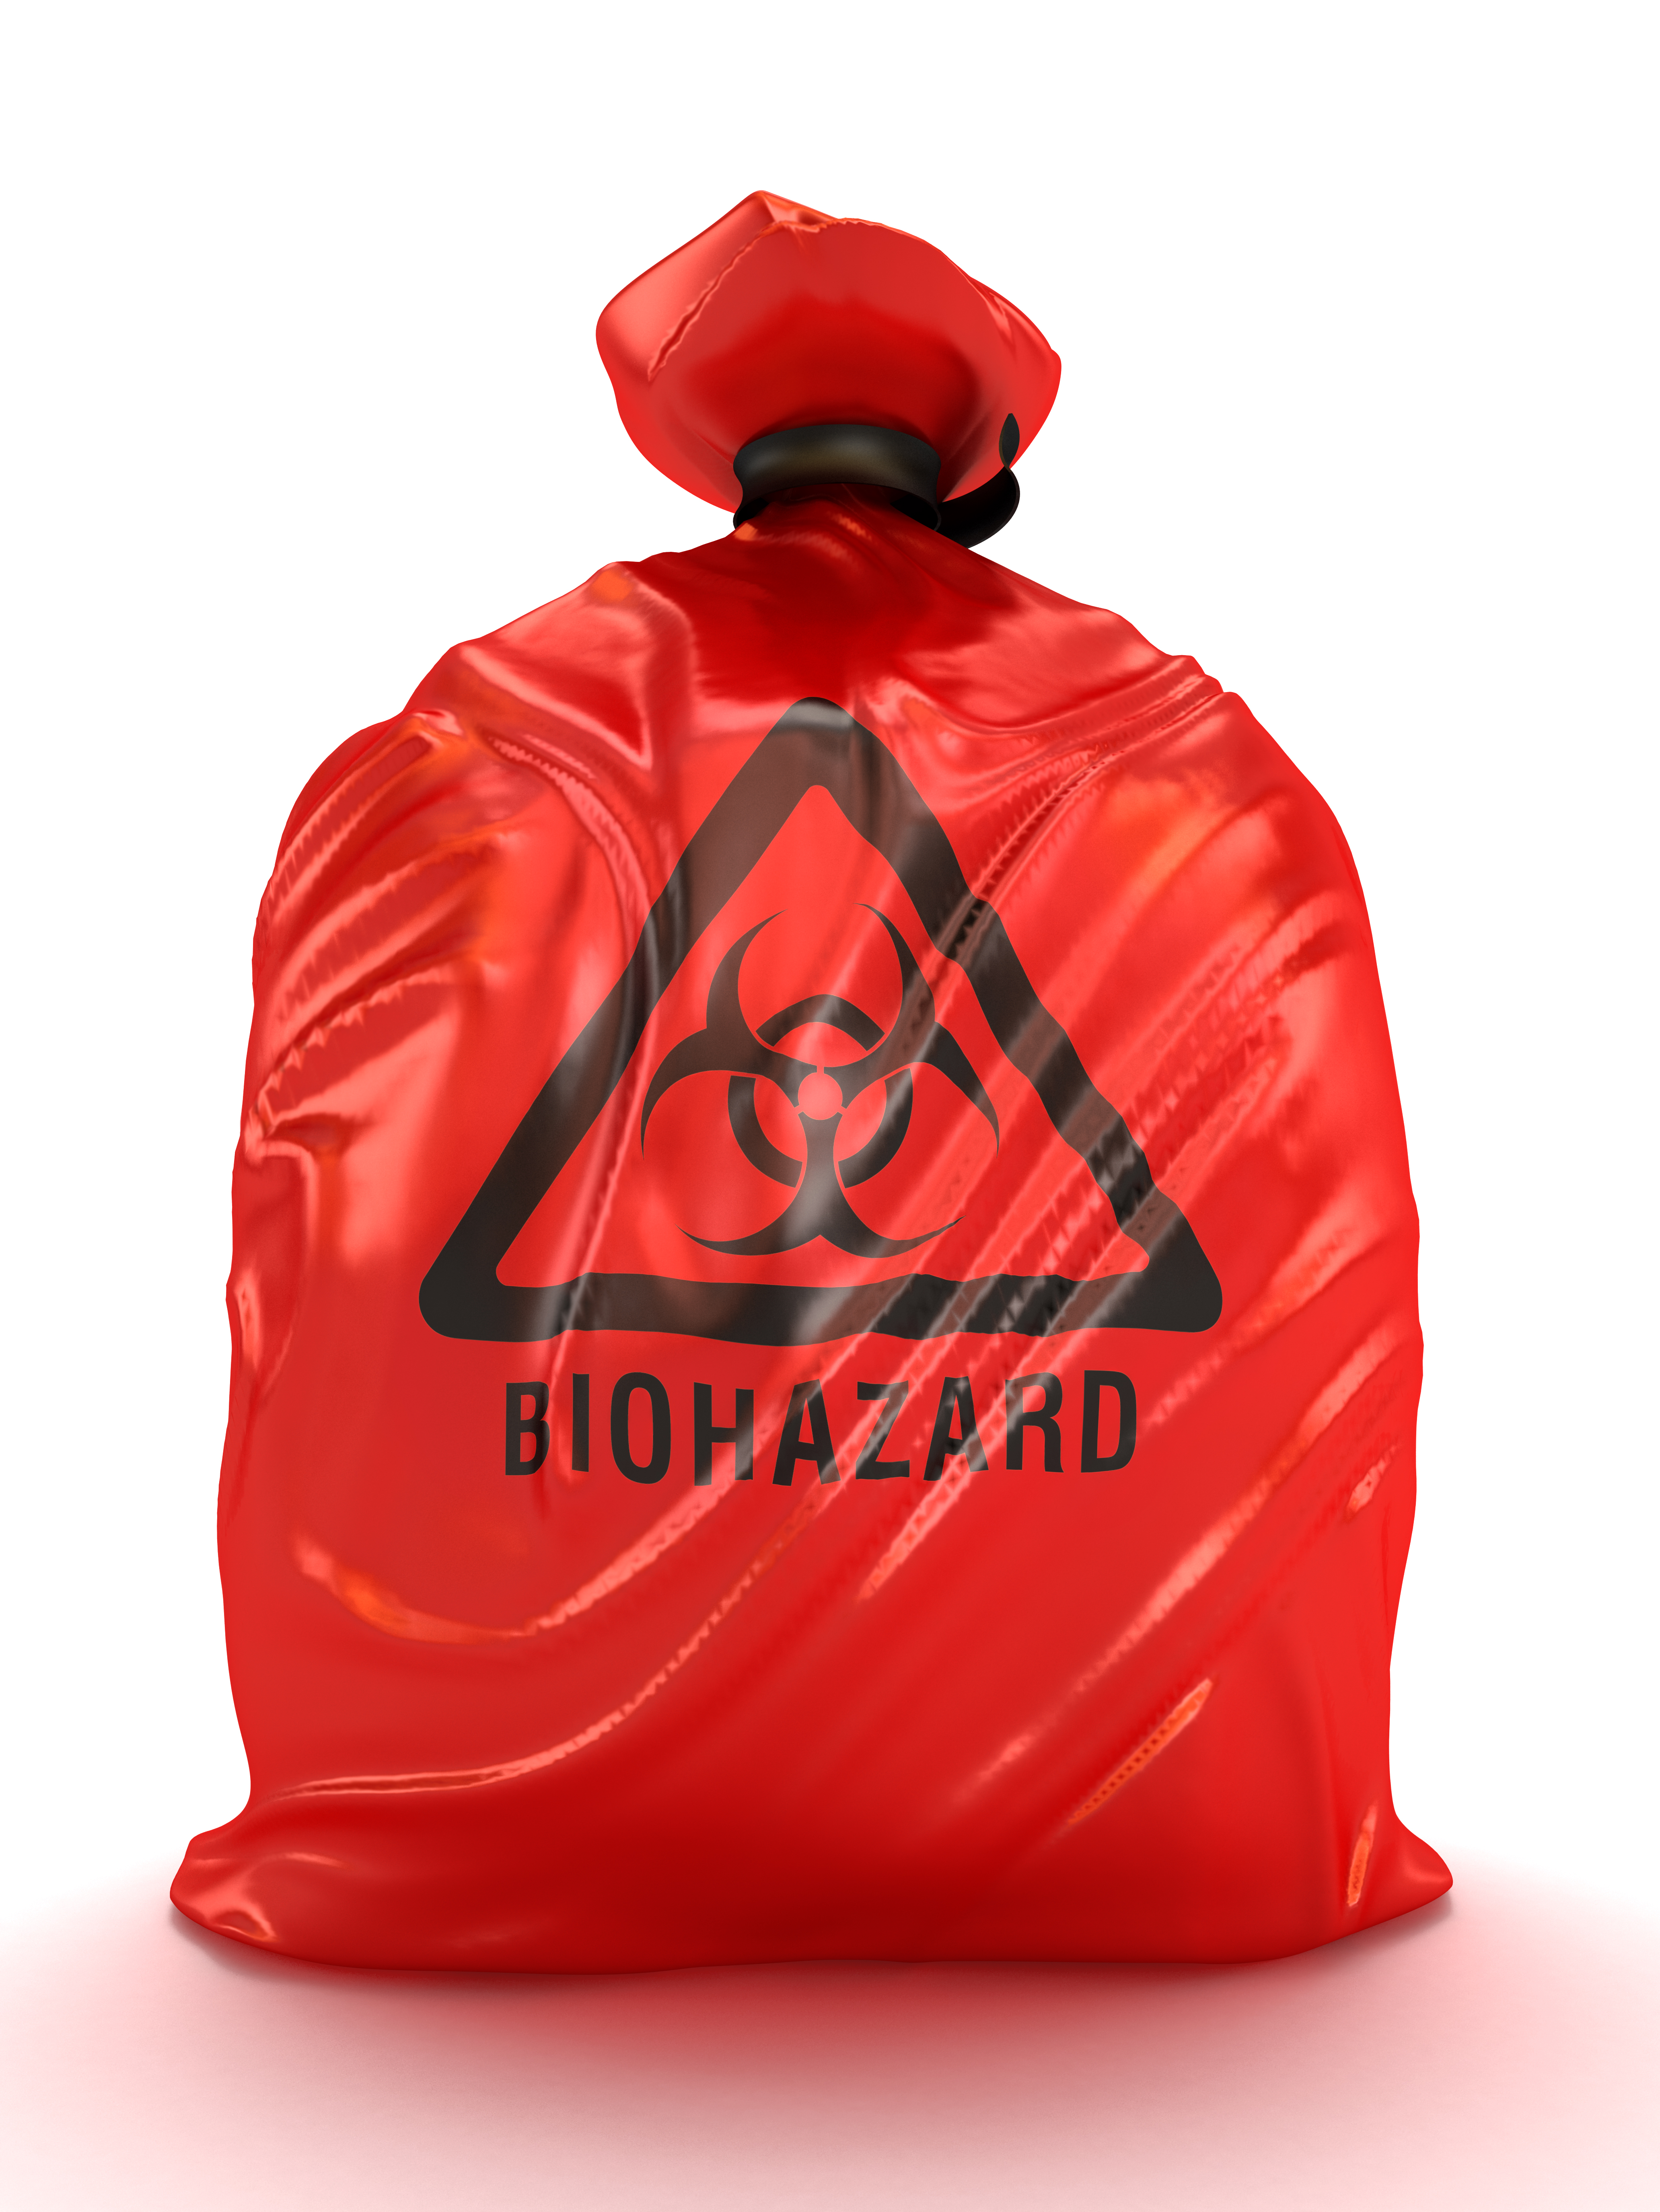 Medical Waste Disposal: Where Does it Go? And What Happens ...